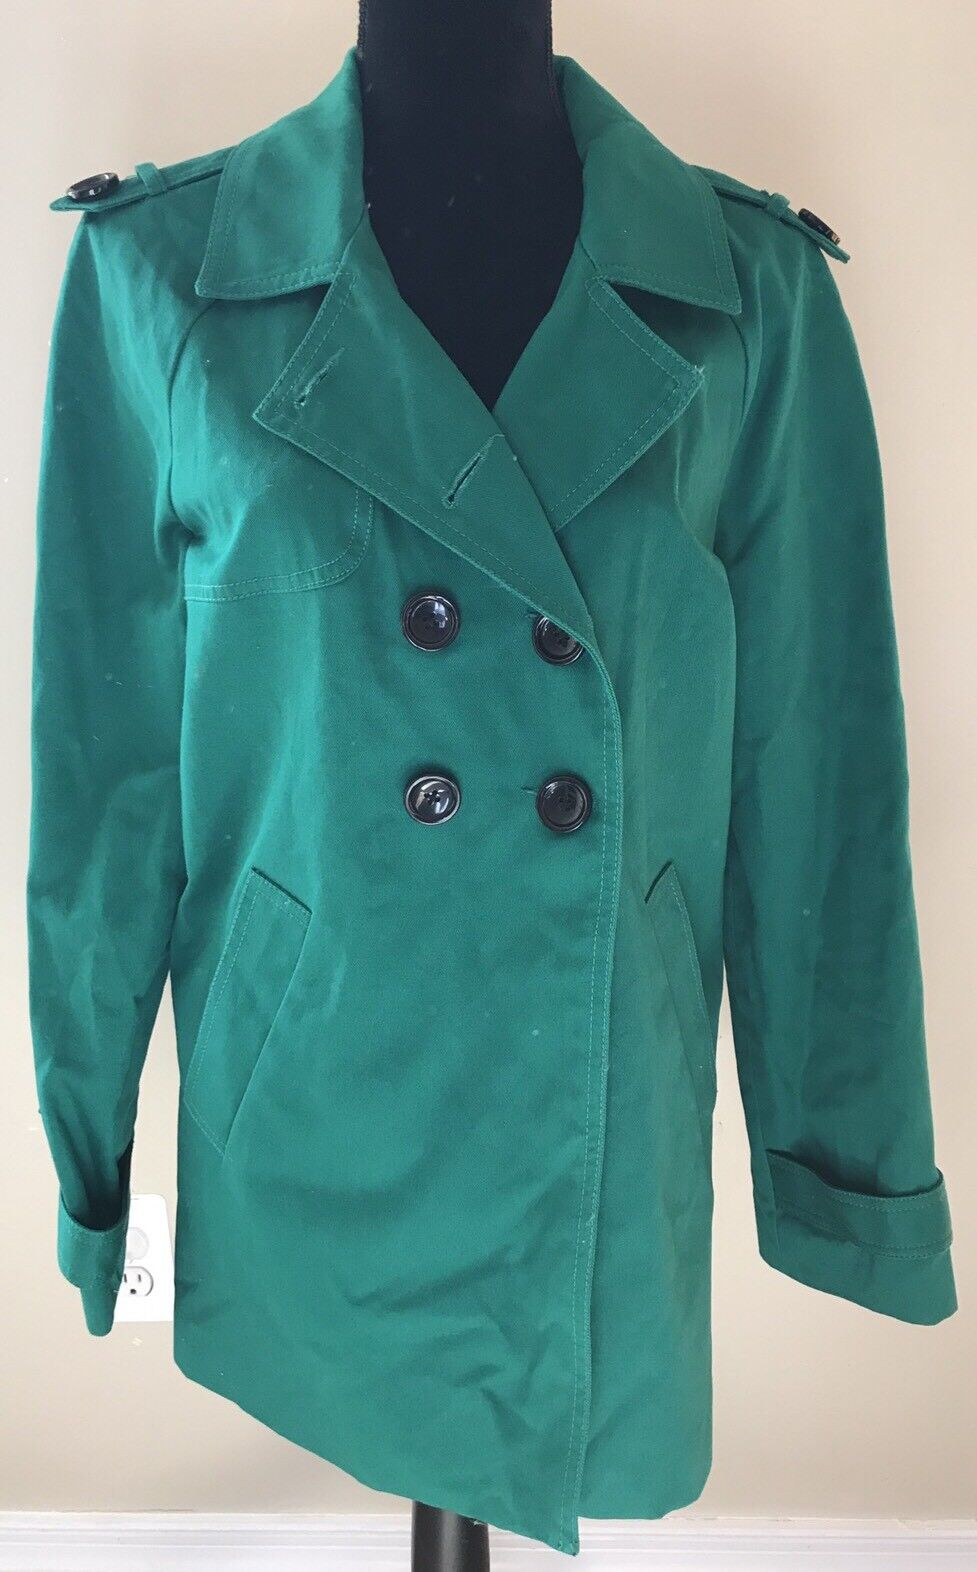 Green Peacoat Double Breasted Jacket Coat Solid Daisy Fuentes sz Large